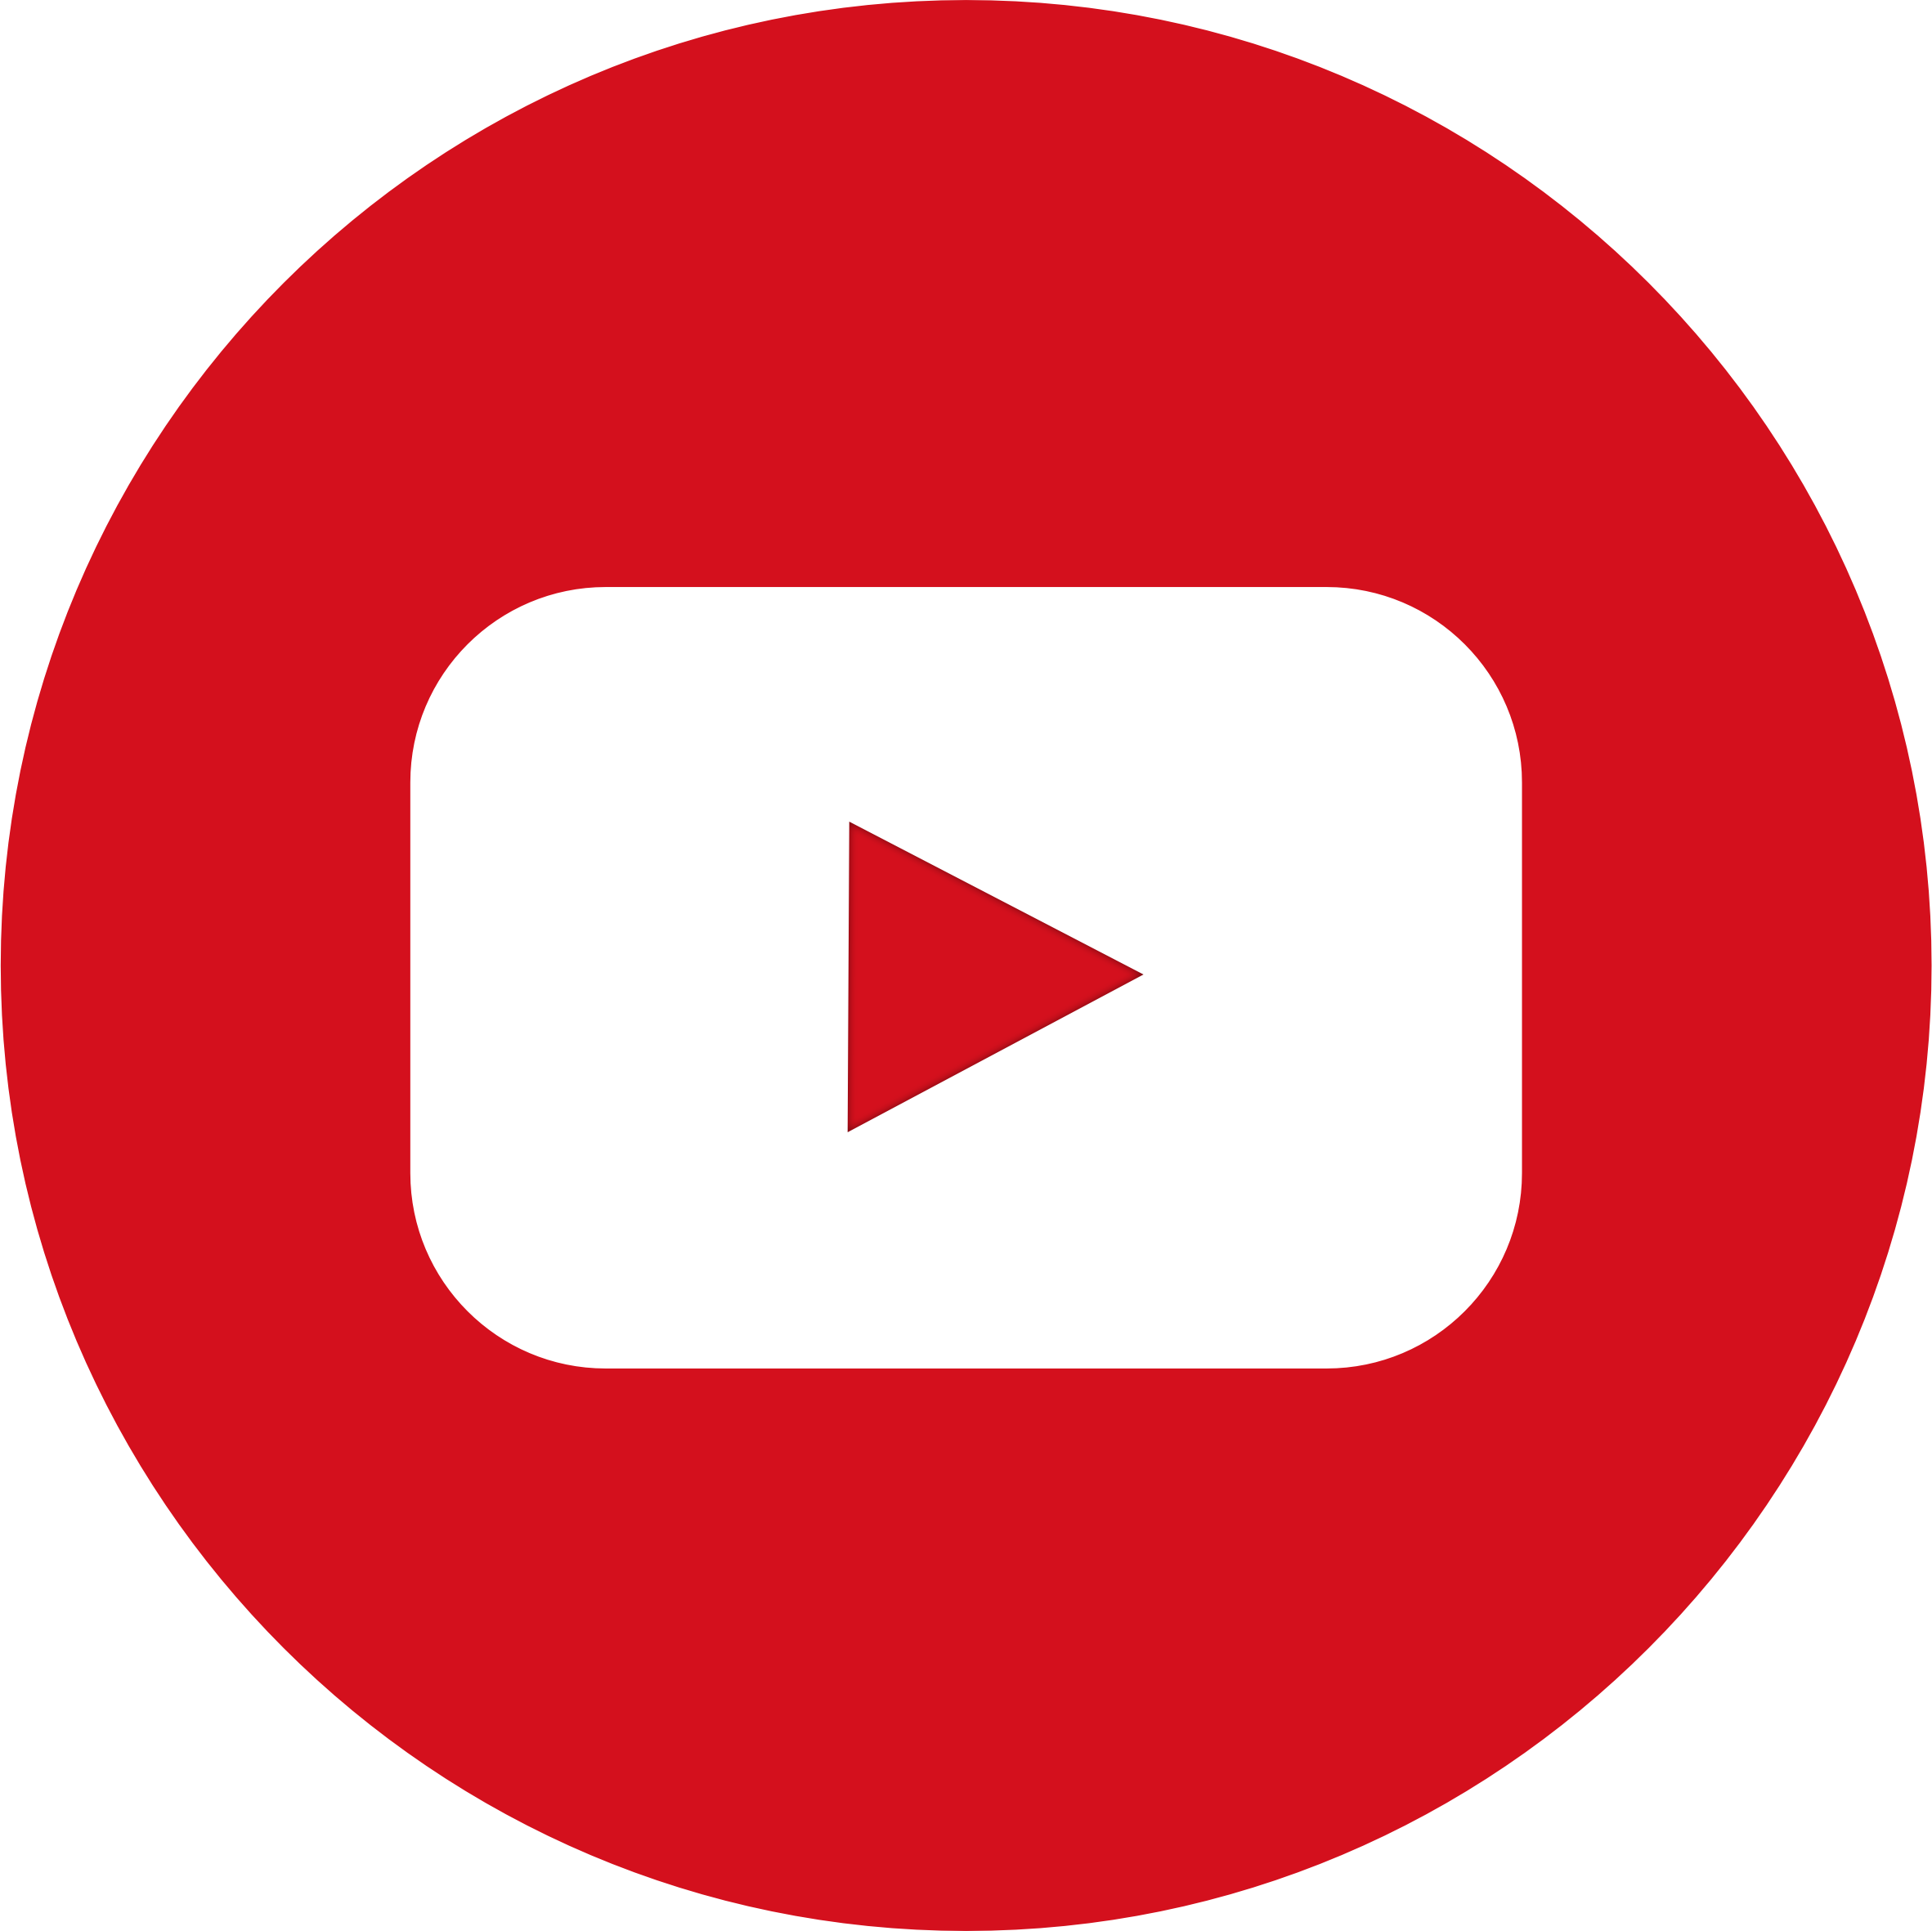 logo-clipart-youtube-9.png